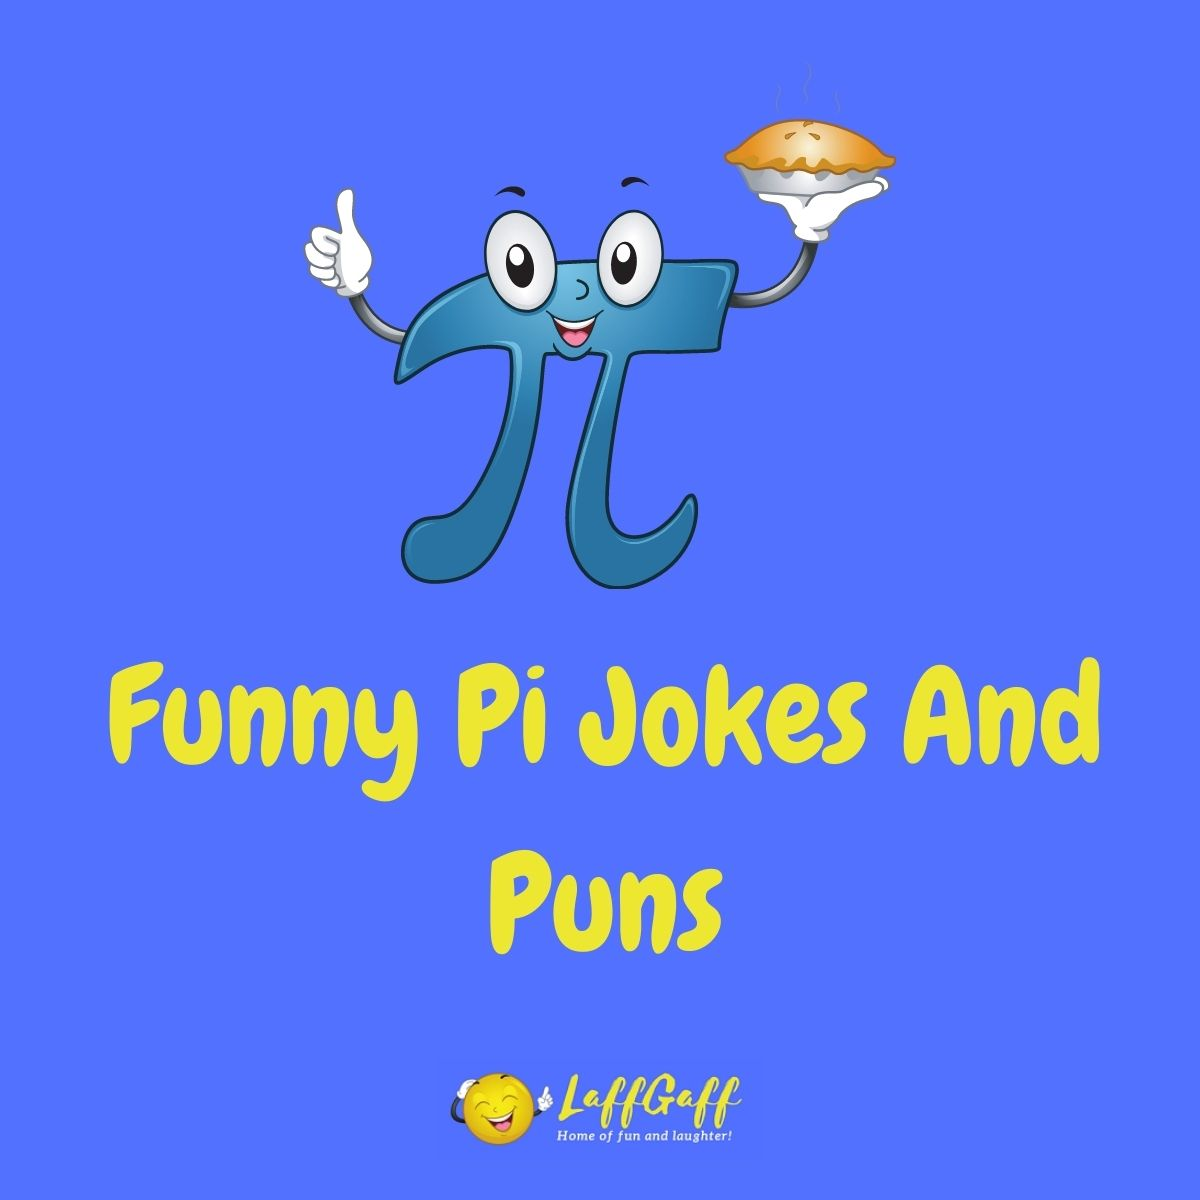 Featured image for a page of funny pi jokes and puns.